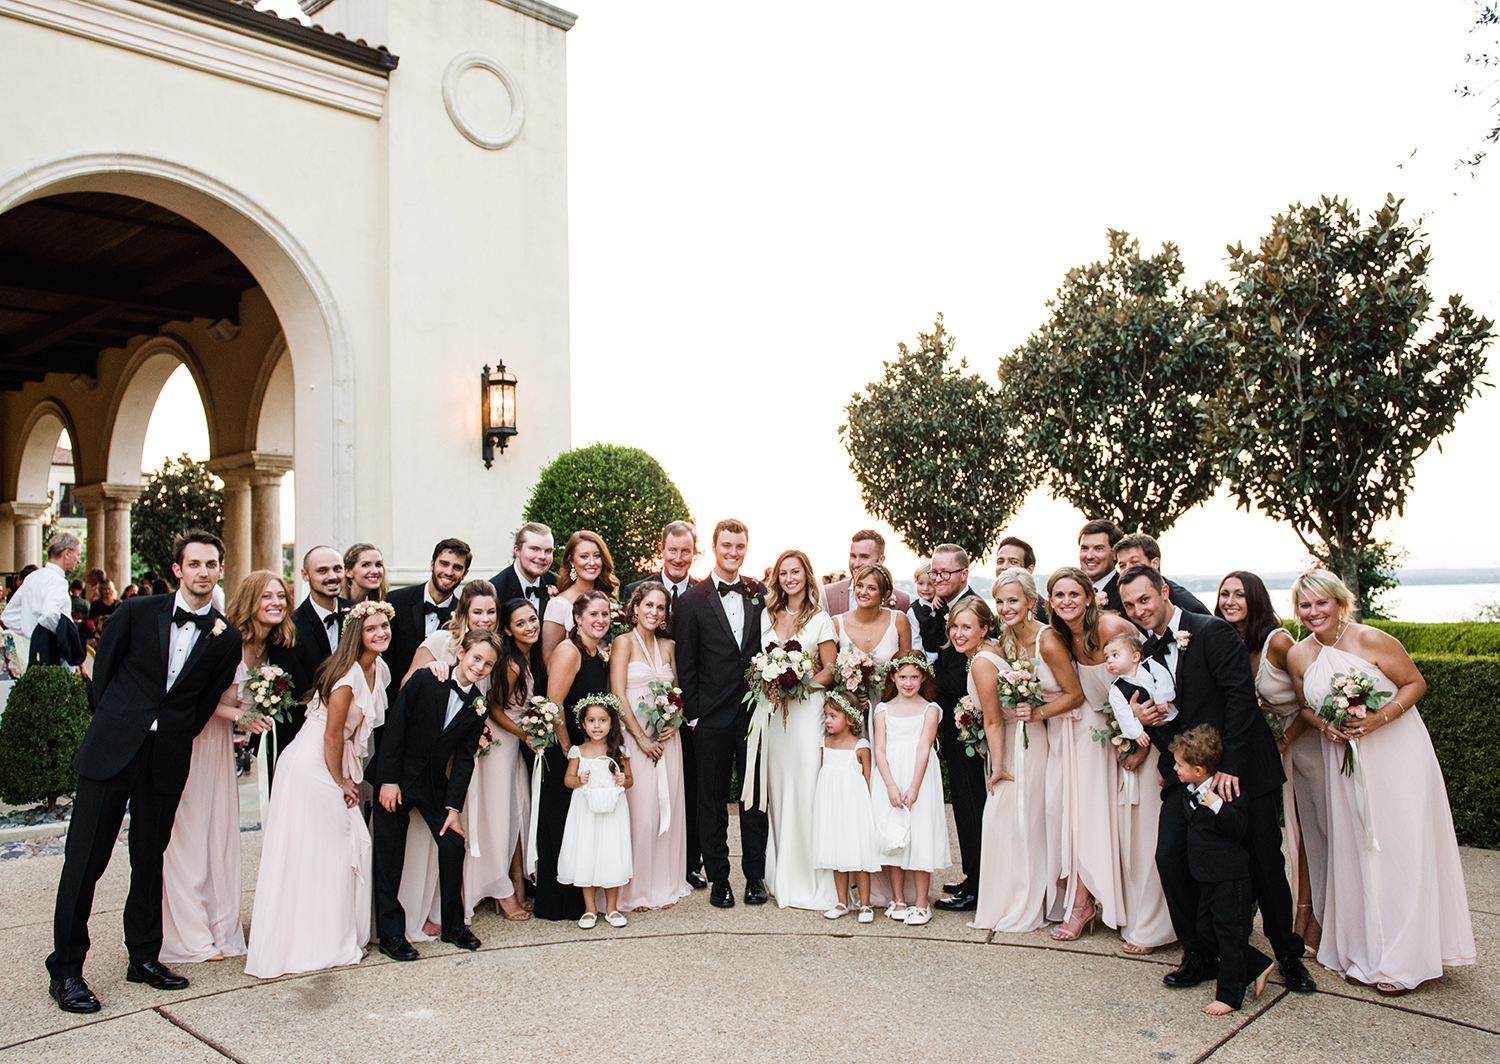 livvyland-blog-olivia-watson-bridal-party-villa-del-lago